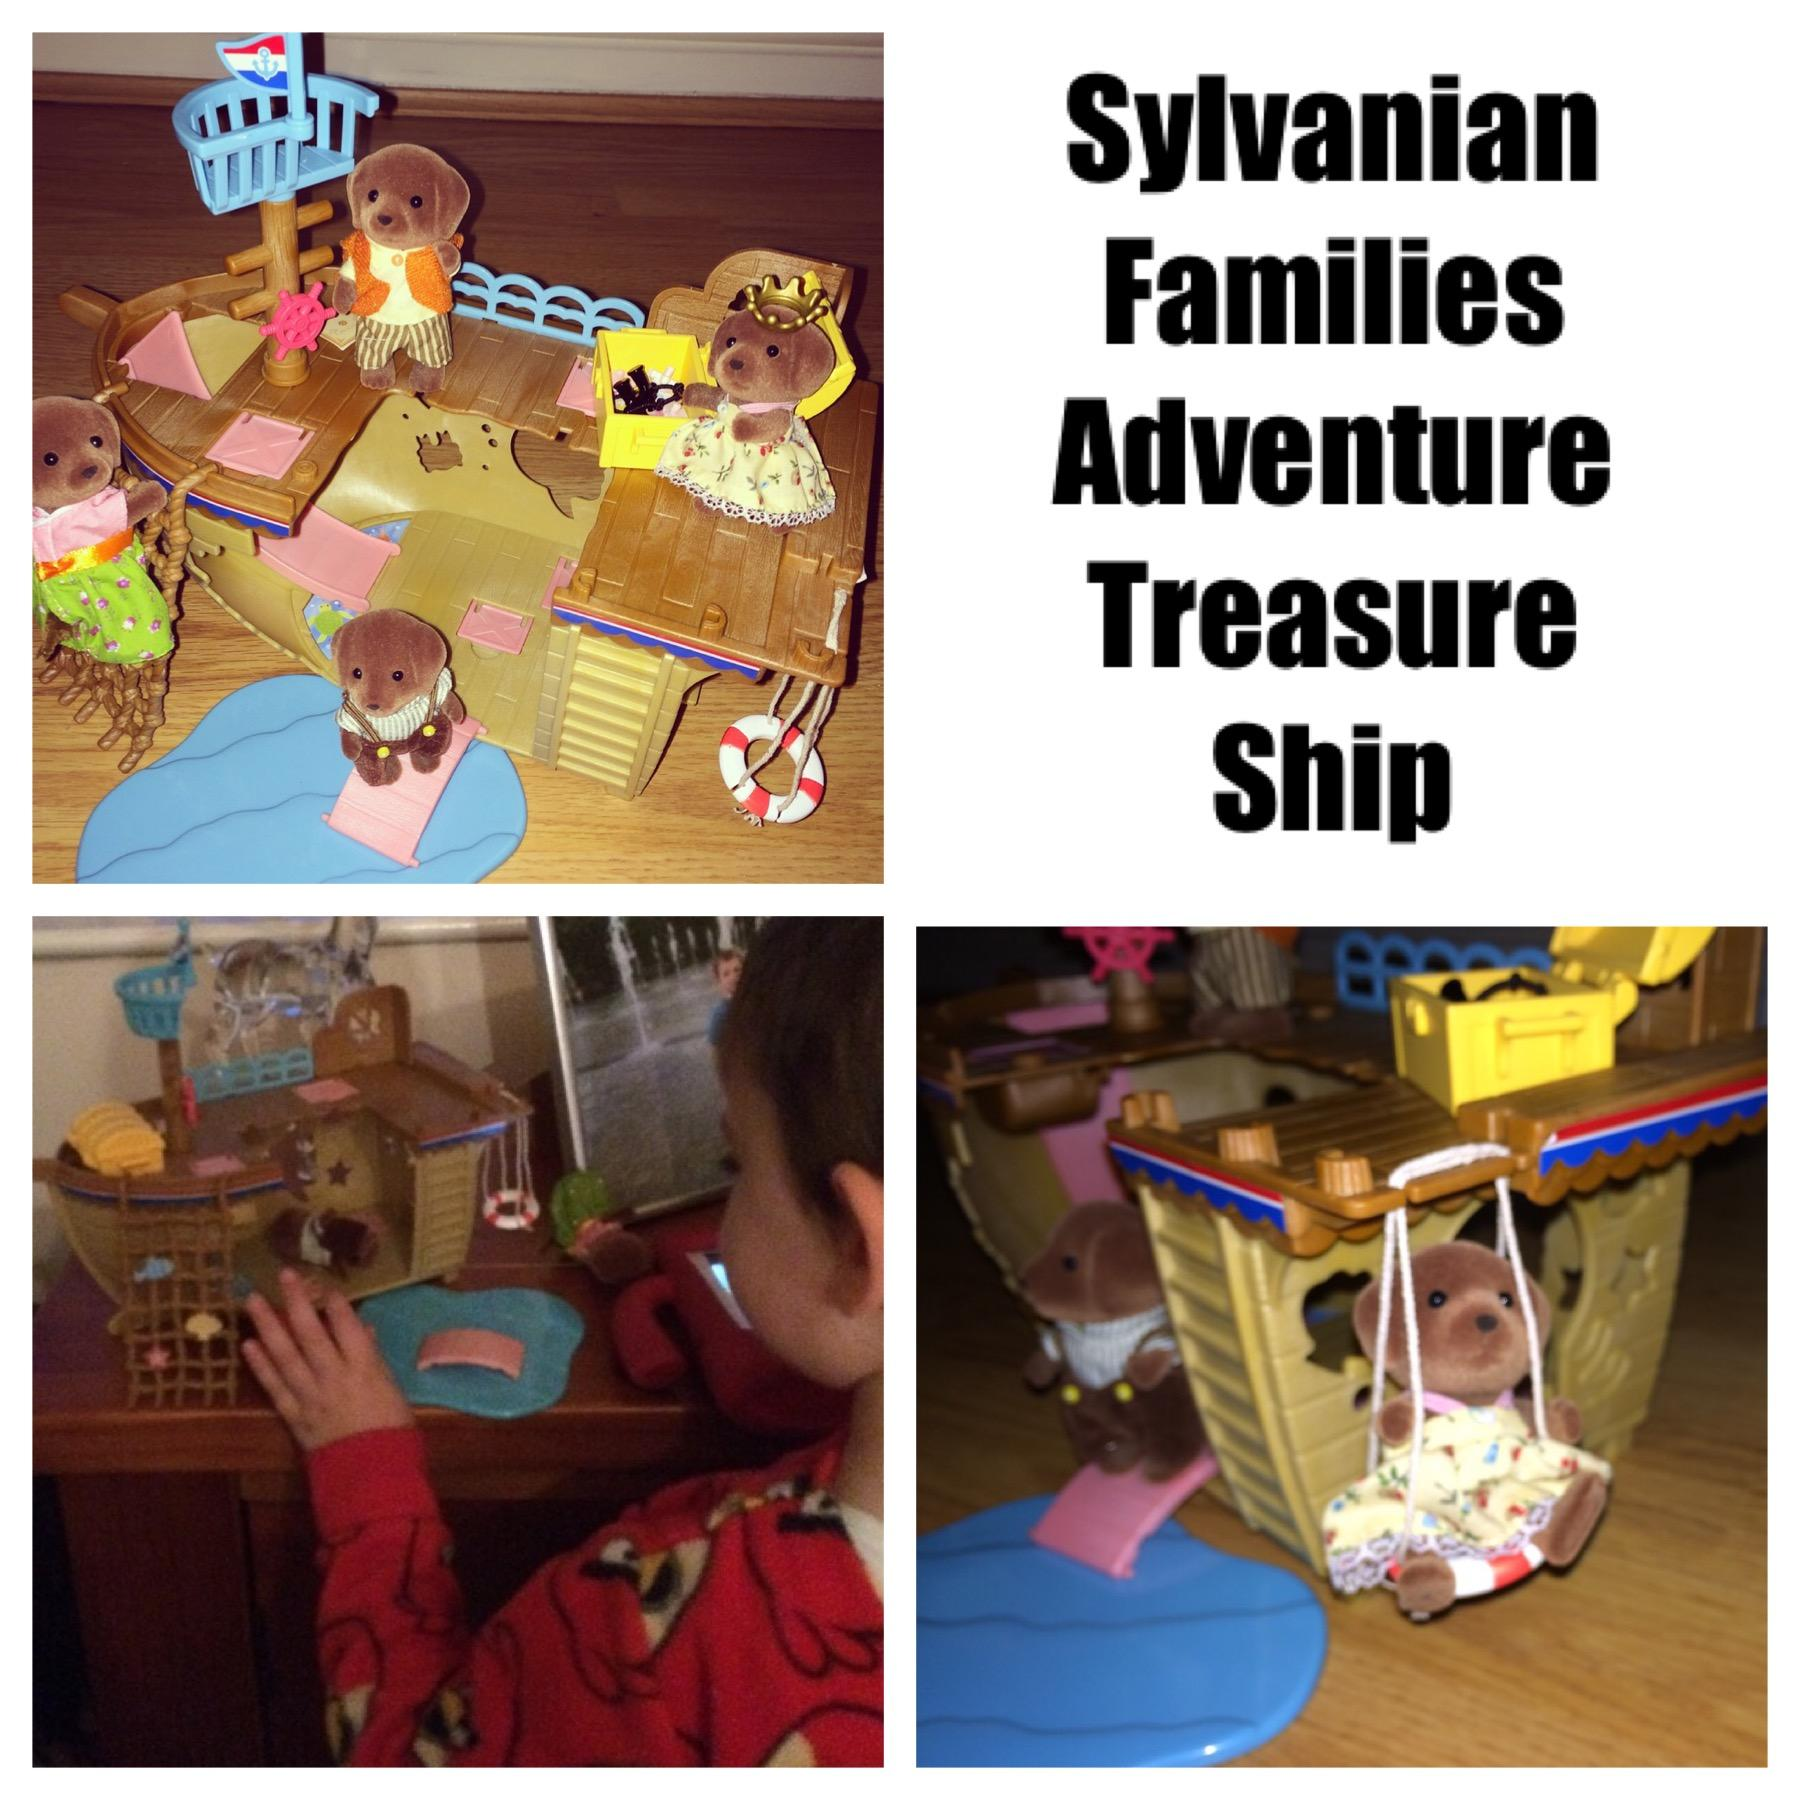 Sylvanian Families Adventure Treasure Ship Review